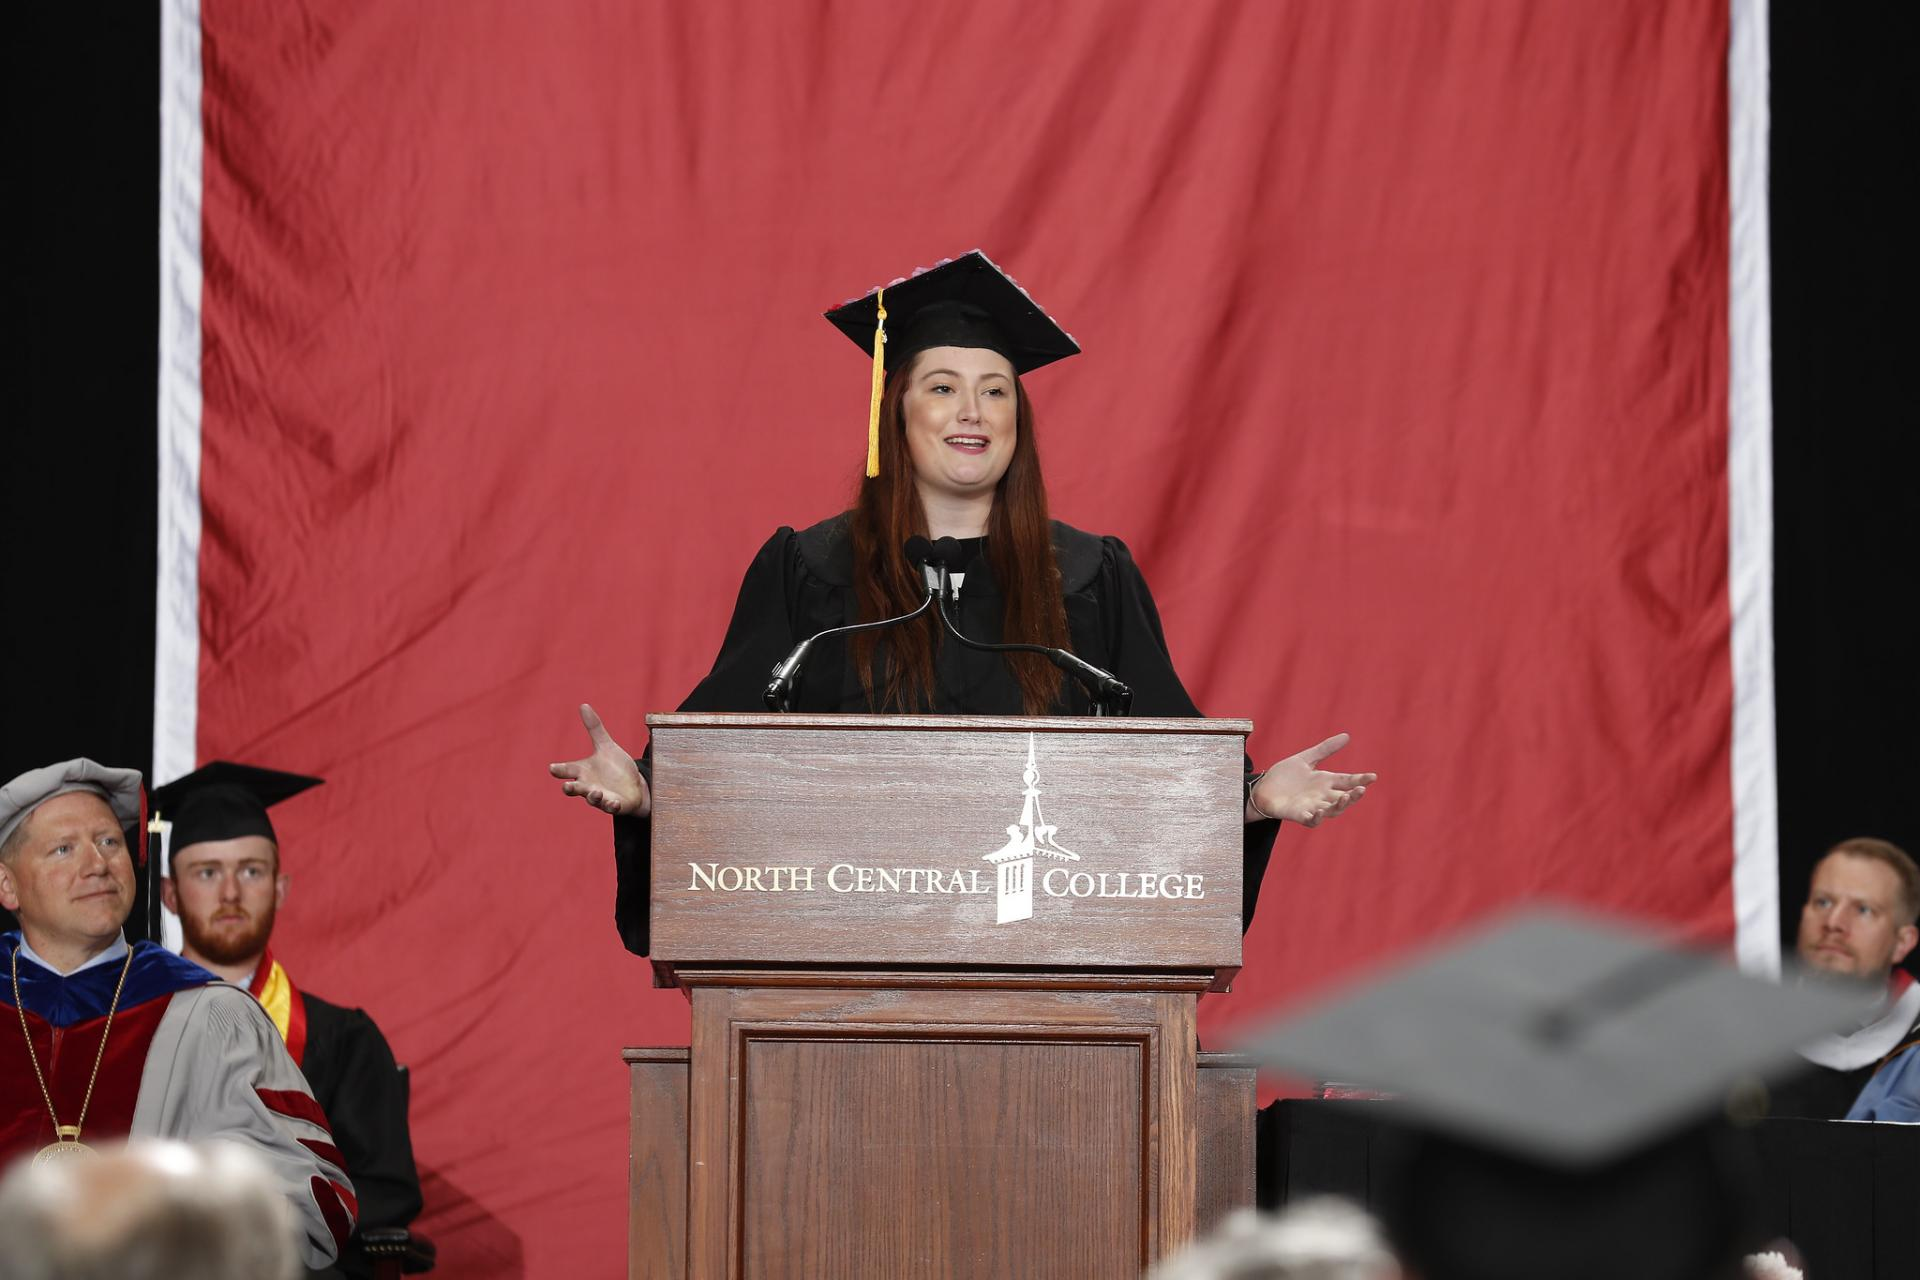 North Central College Commencement speaker Norah Flaherty.